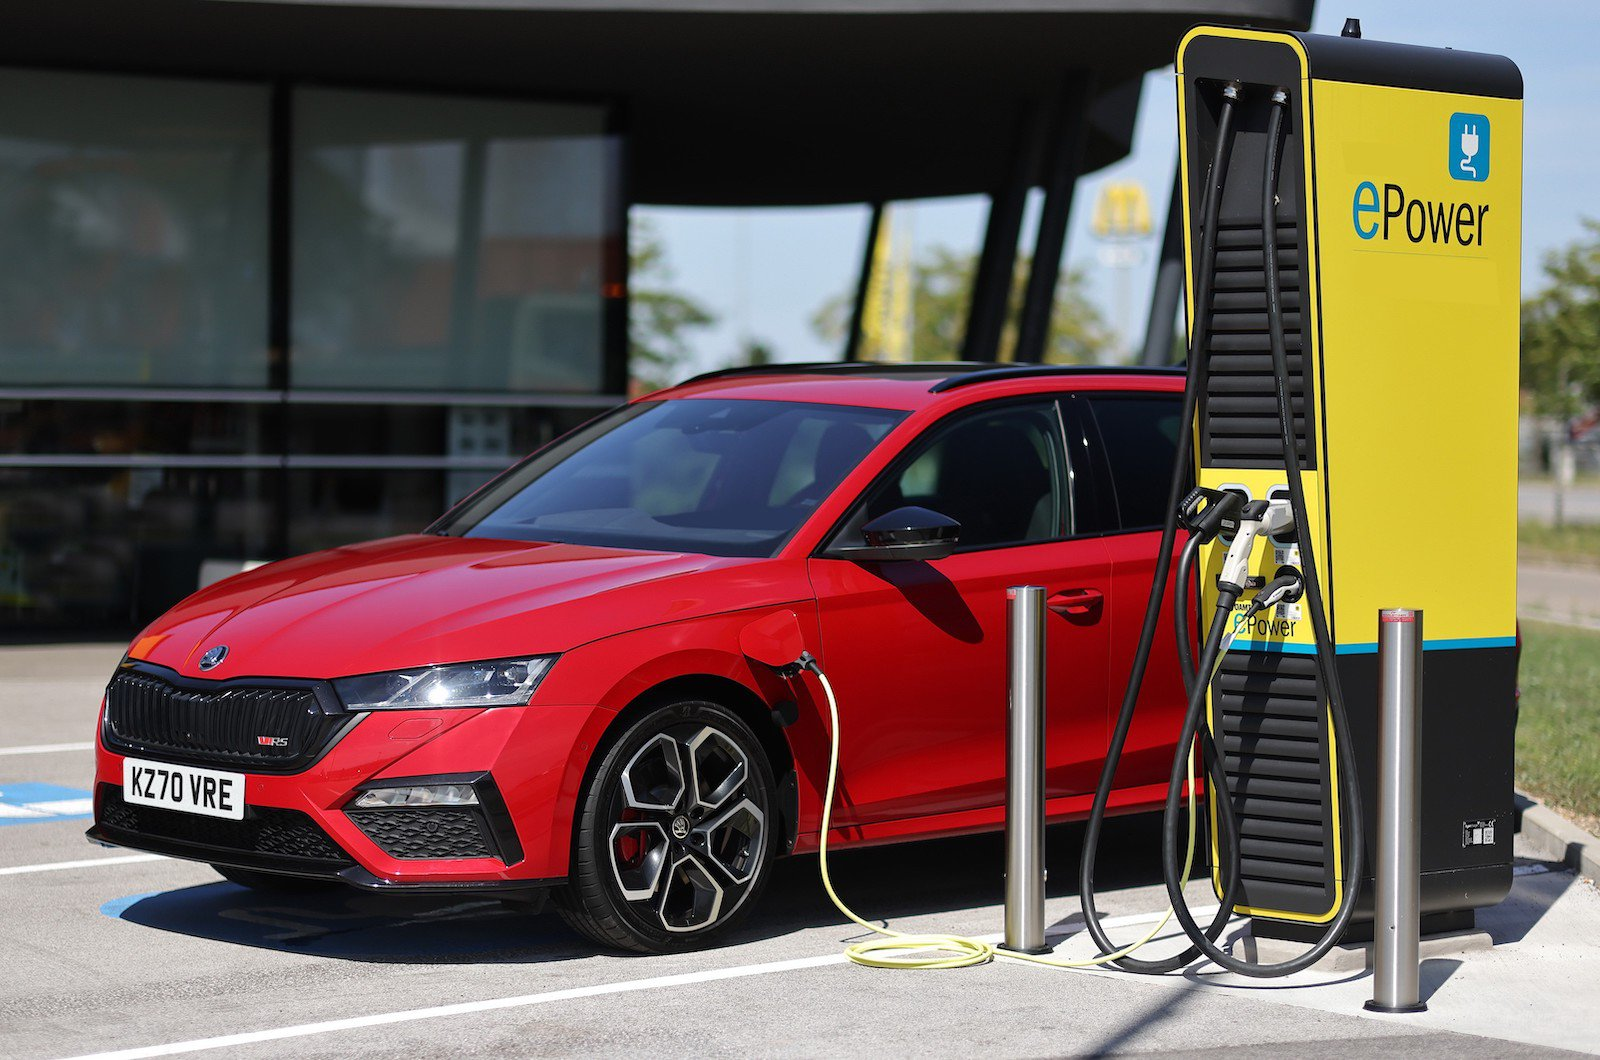 The UK's fast-growing network of public charging stations lets you top up your battery to keep driving on electric power more often